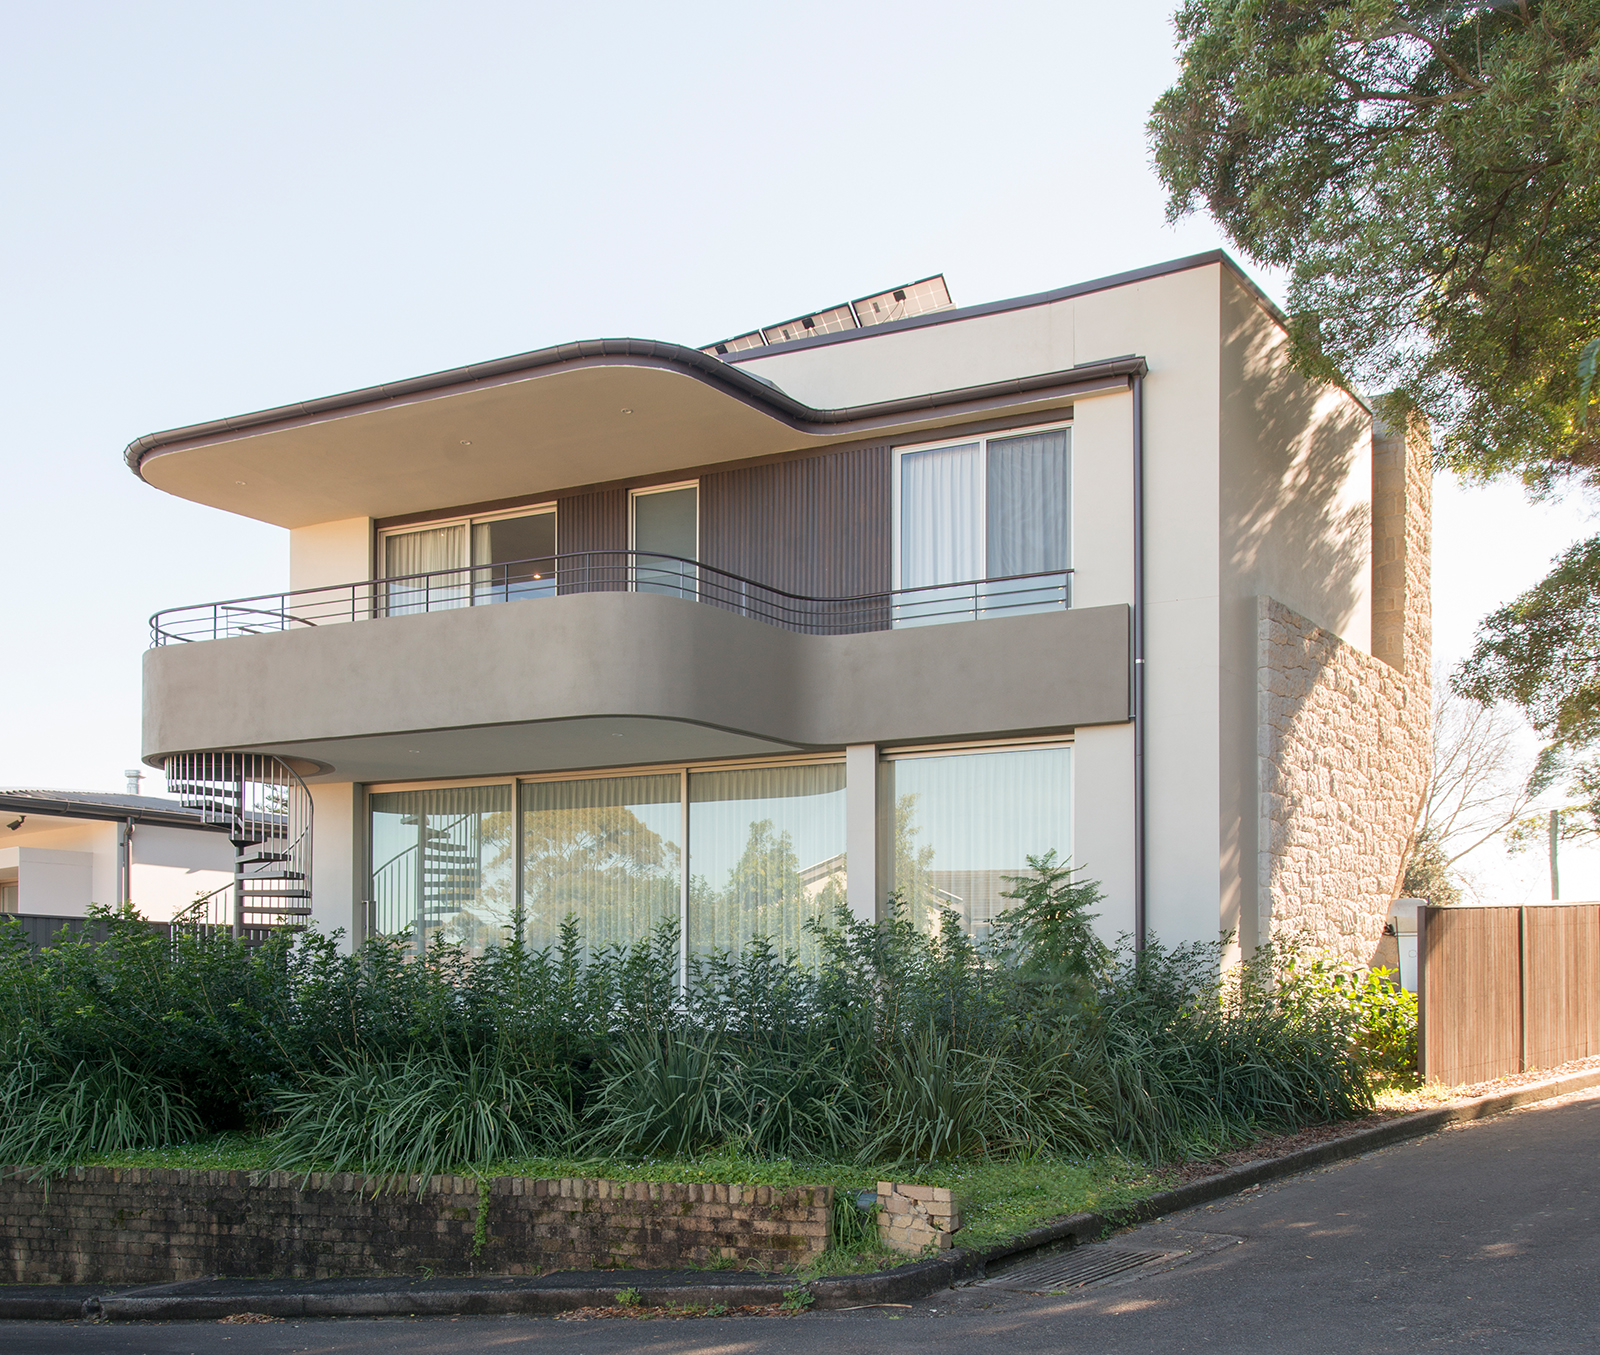 Bridge Building By Luigi Rosselli Architects Local Australian Architecture Hunters Hill, Sydney Image 4